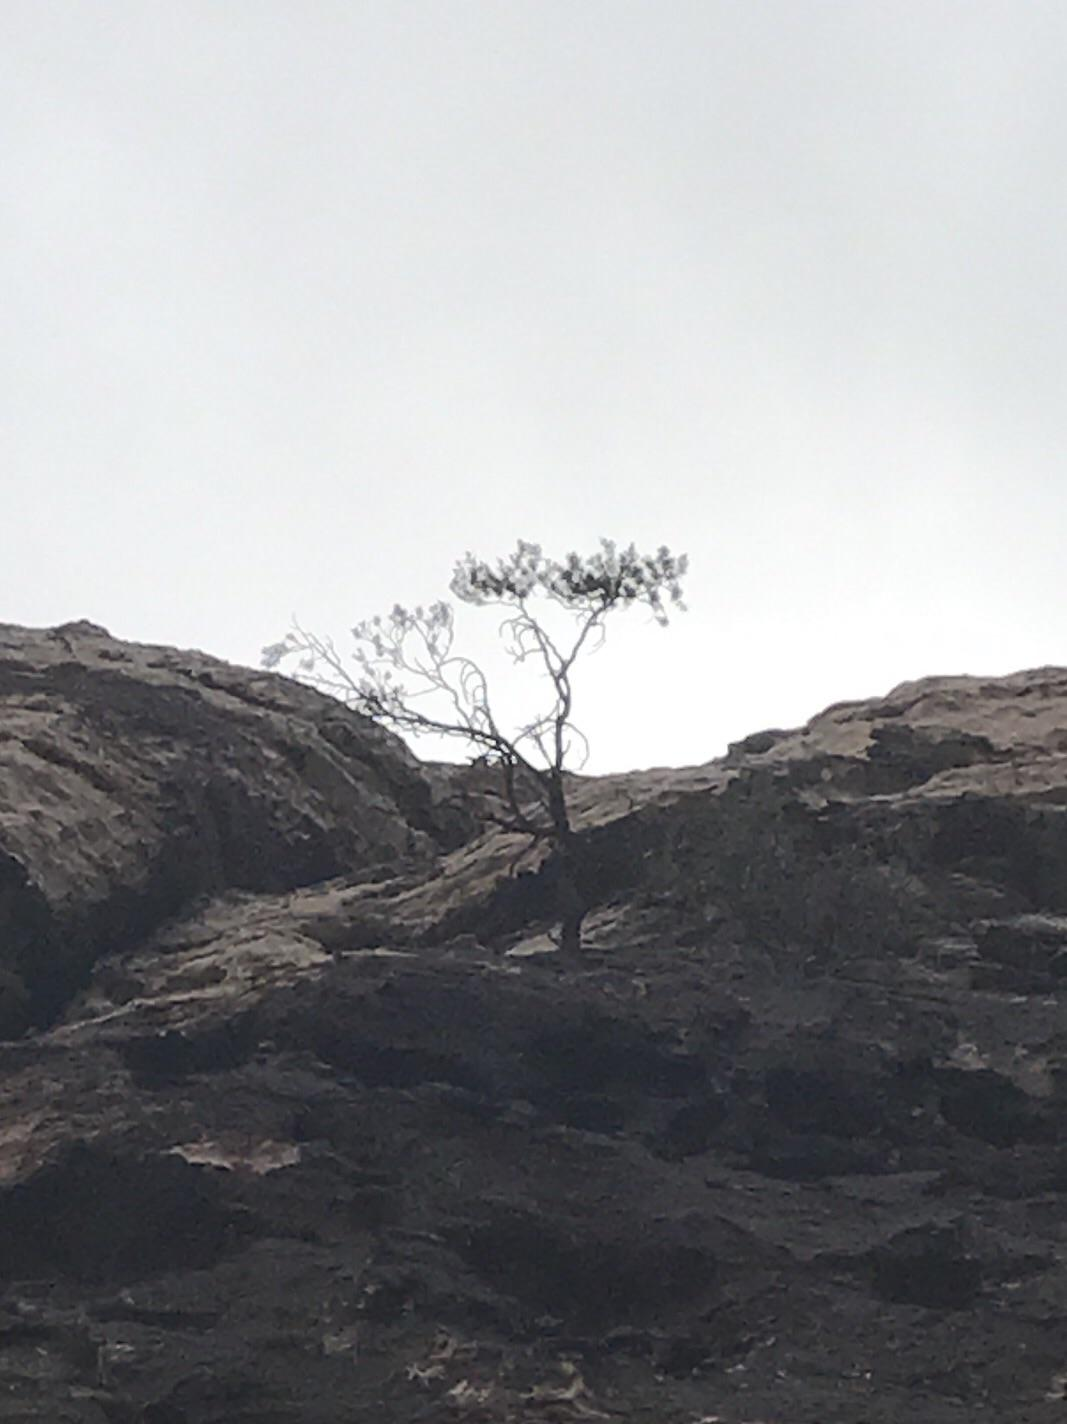 [Image] Don't wait for the right environment. Grow where you are! (Red Rock)